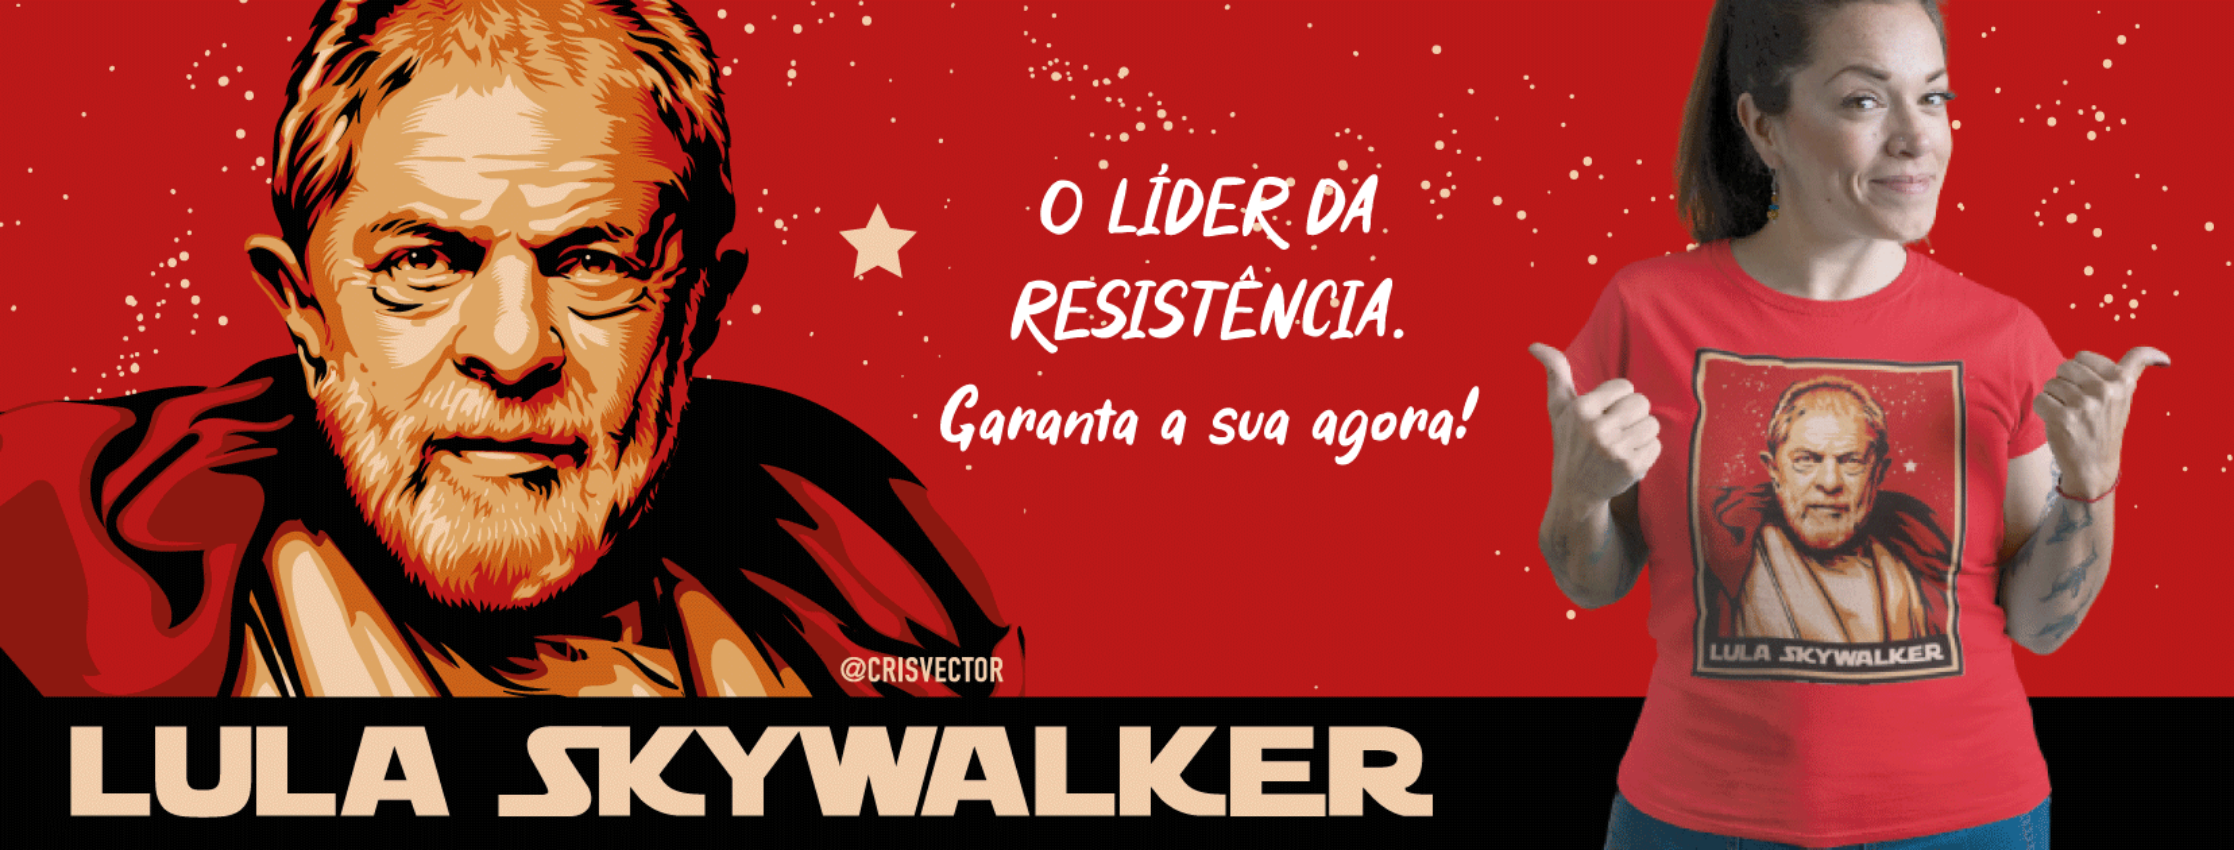 Lula Skywalker